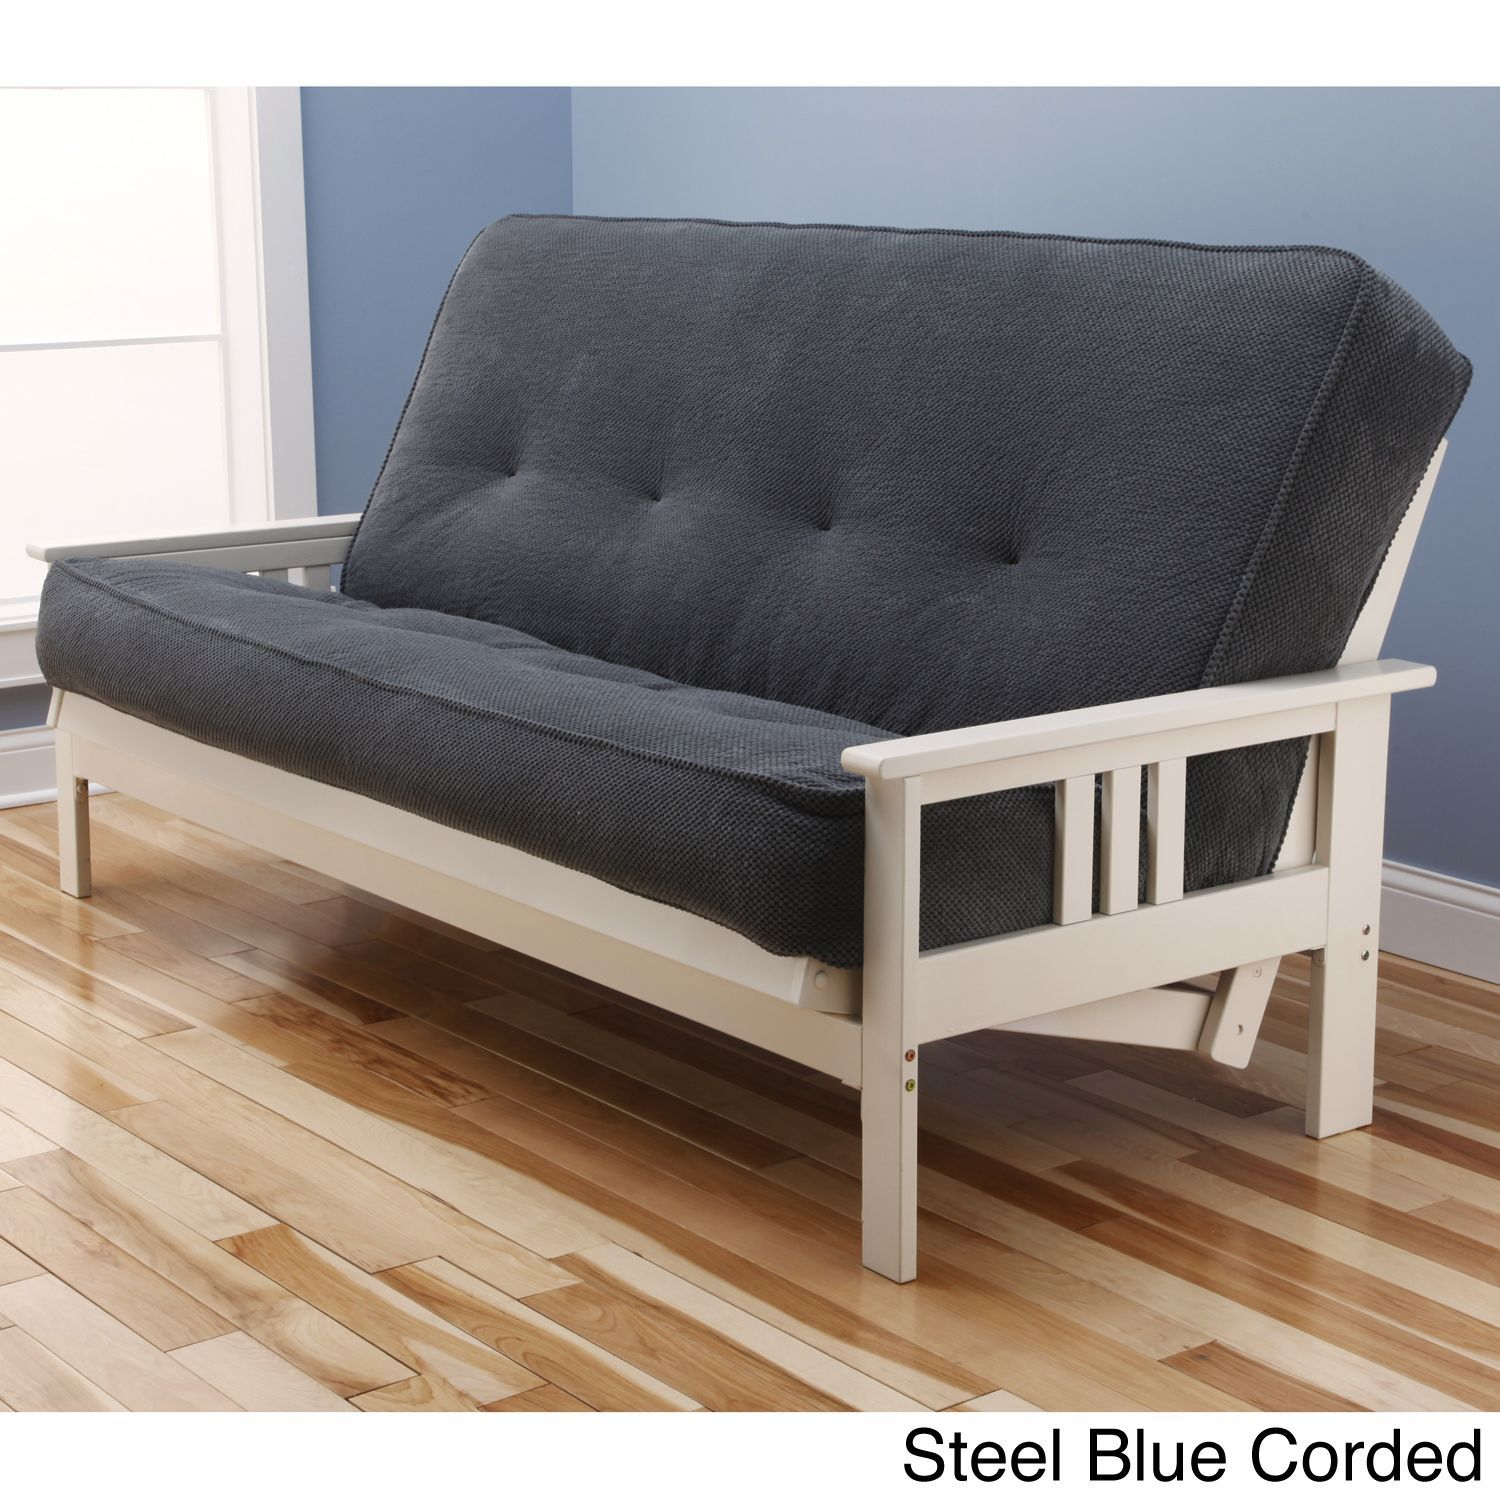 Somette Beli Mont Multi Flex Antique White Wood Futon Frame With Innerspring Mattress Set Steel Blue Corded Size Full